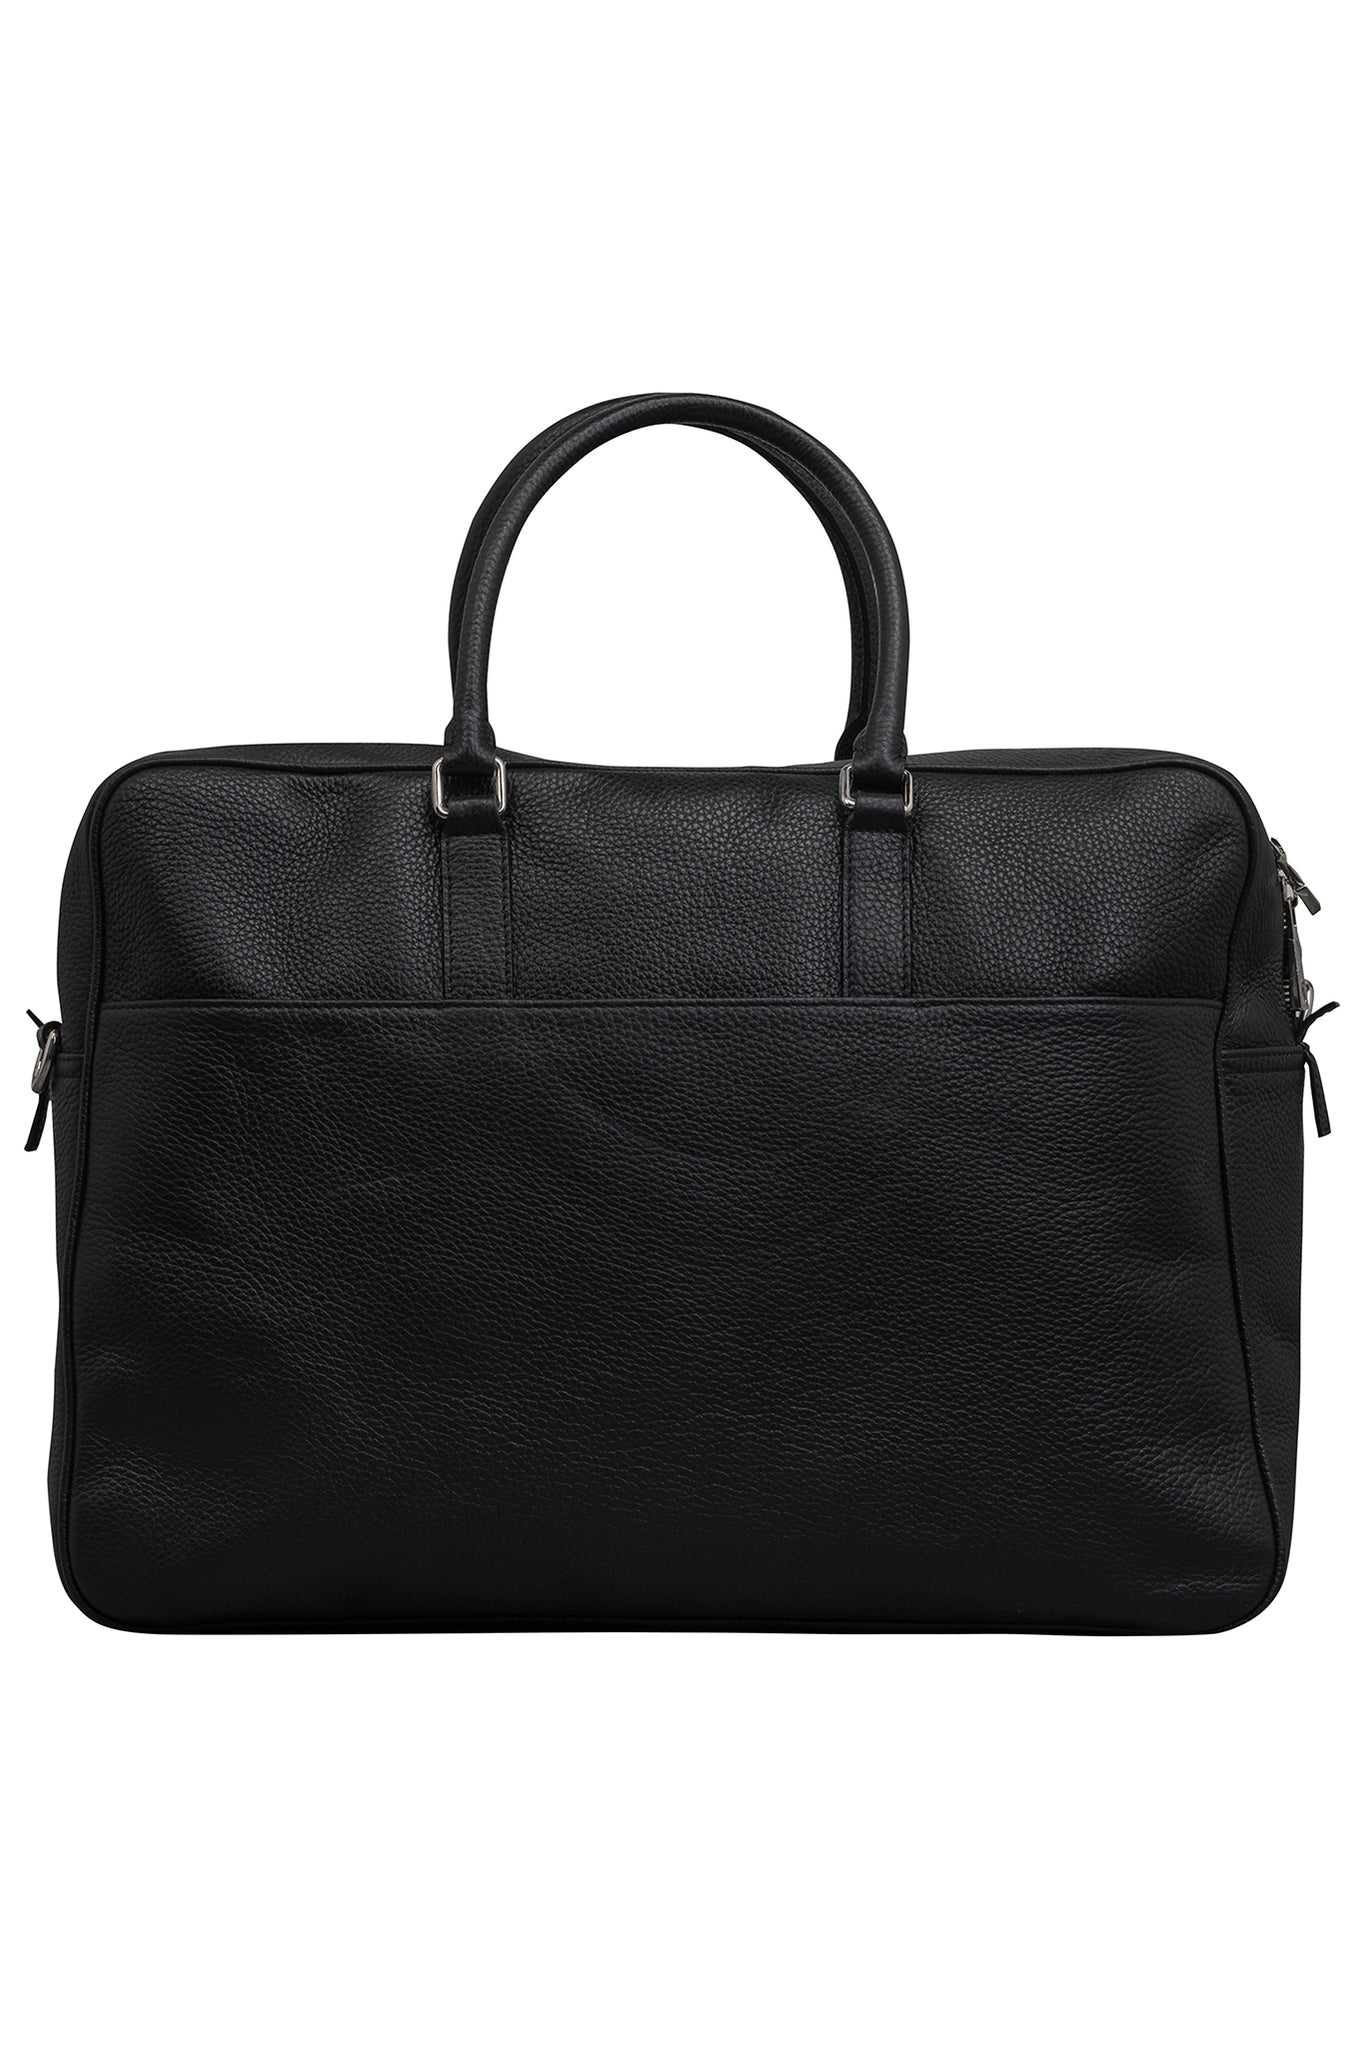 WEEKEND TRAVEL BAG, Accessories - ROE